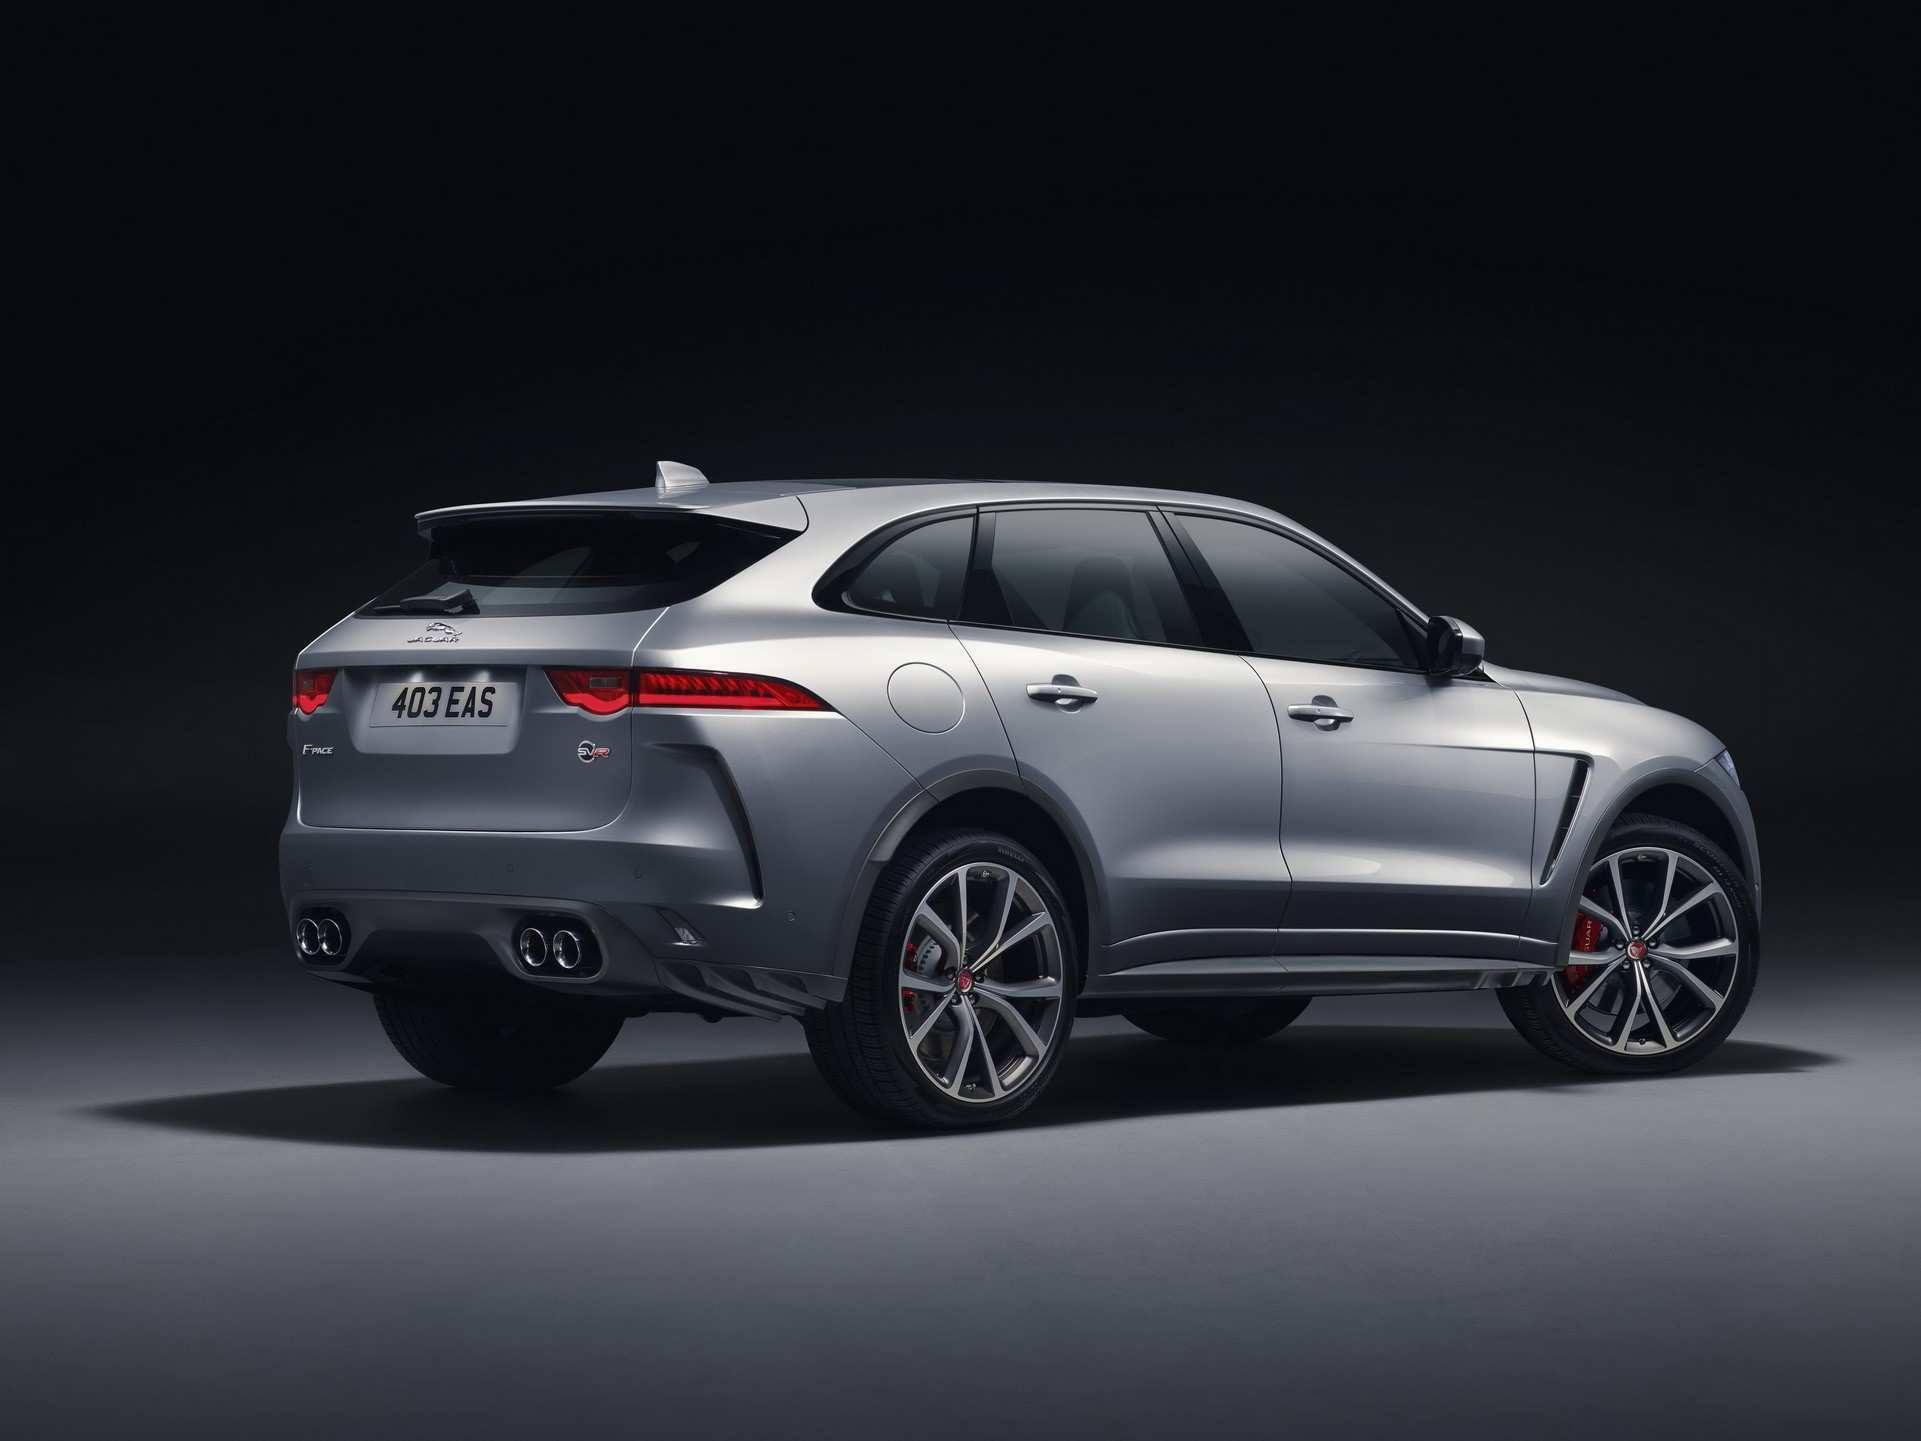 63 All New Suv Jaguar 2019 Reviews